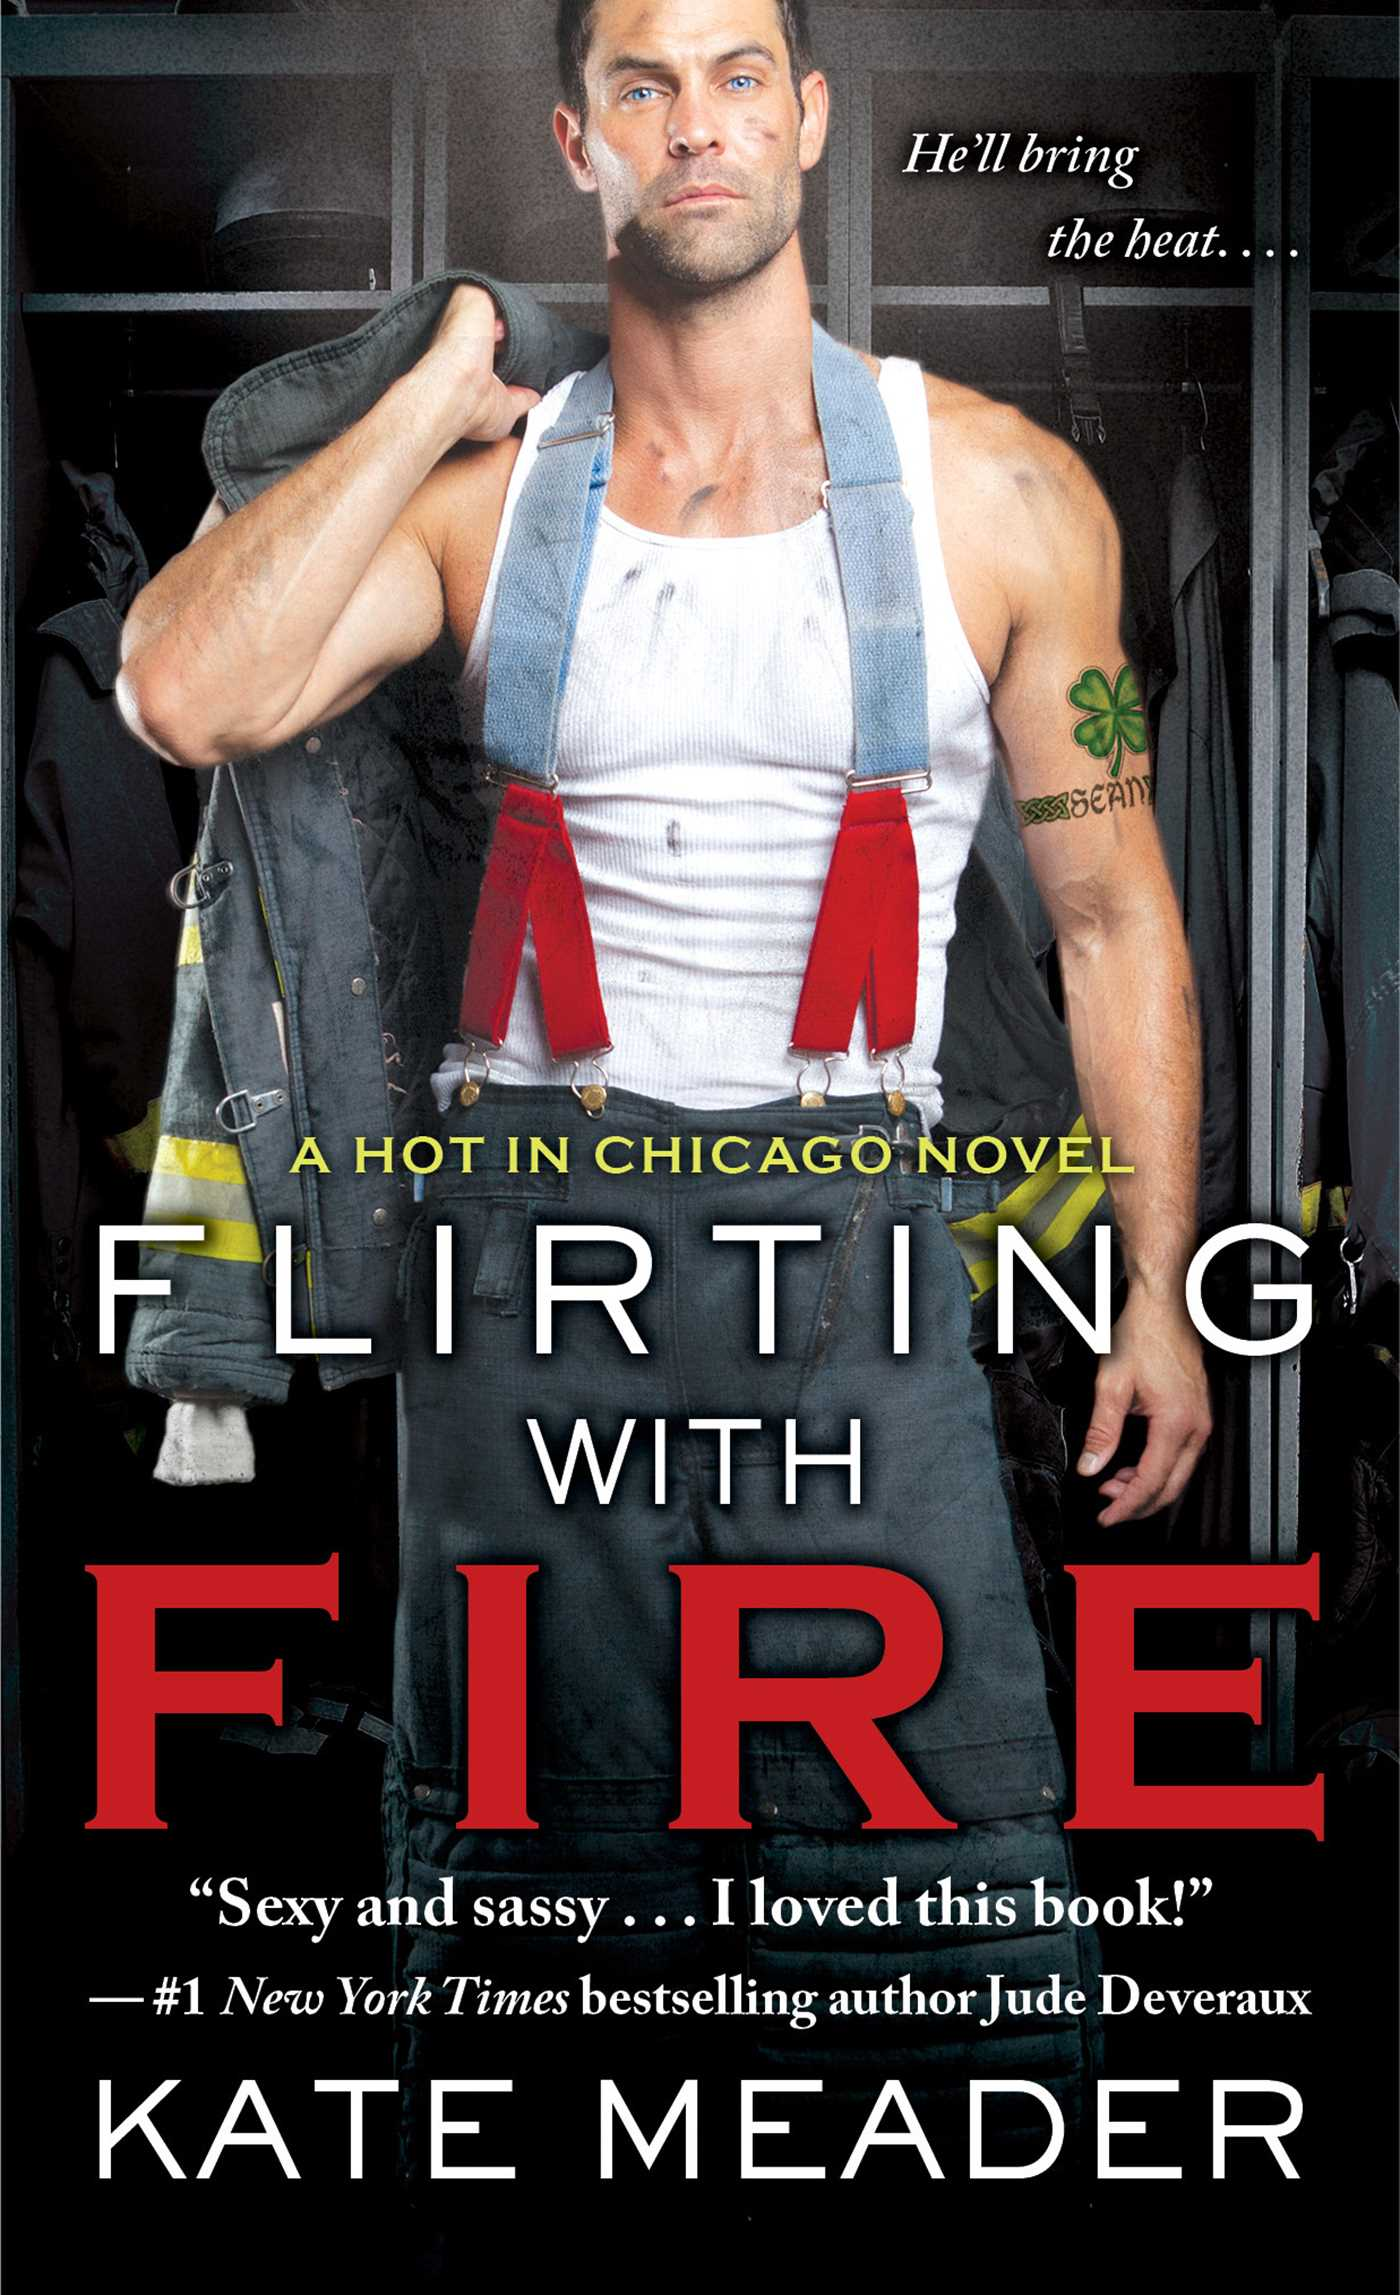 Flirting with fire 9781476785905 hr